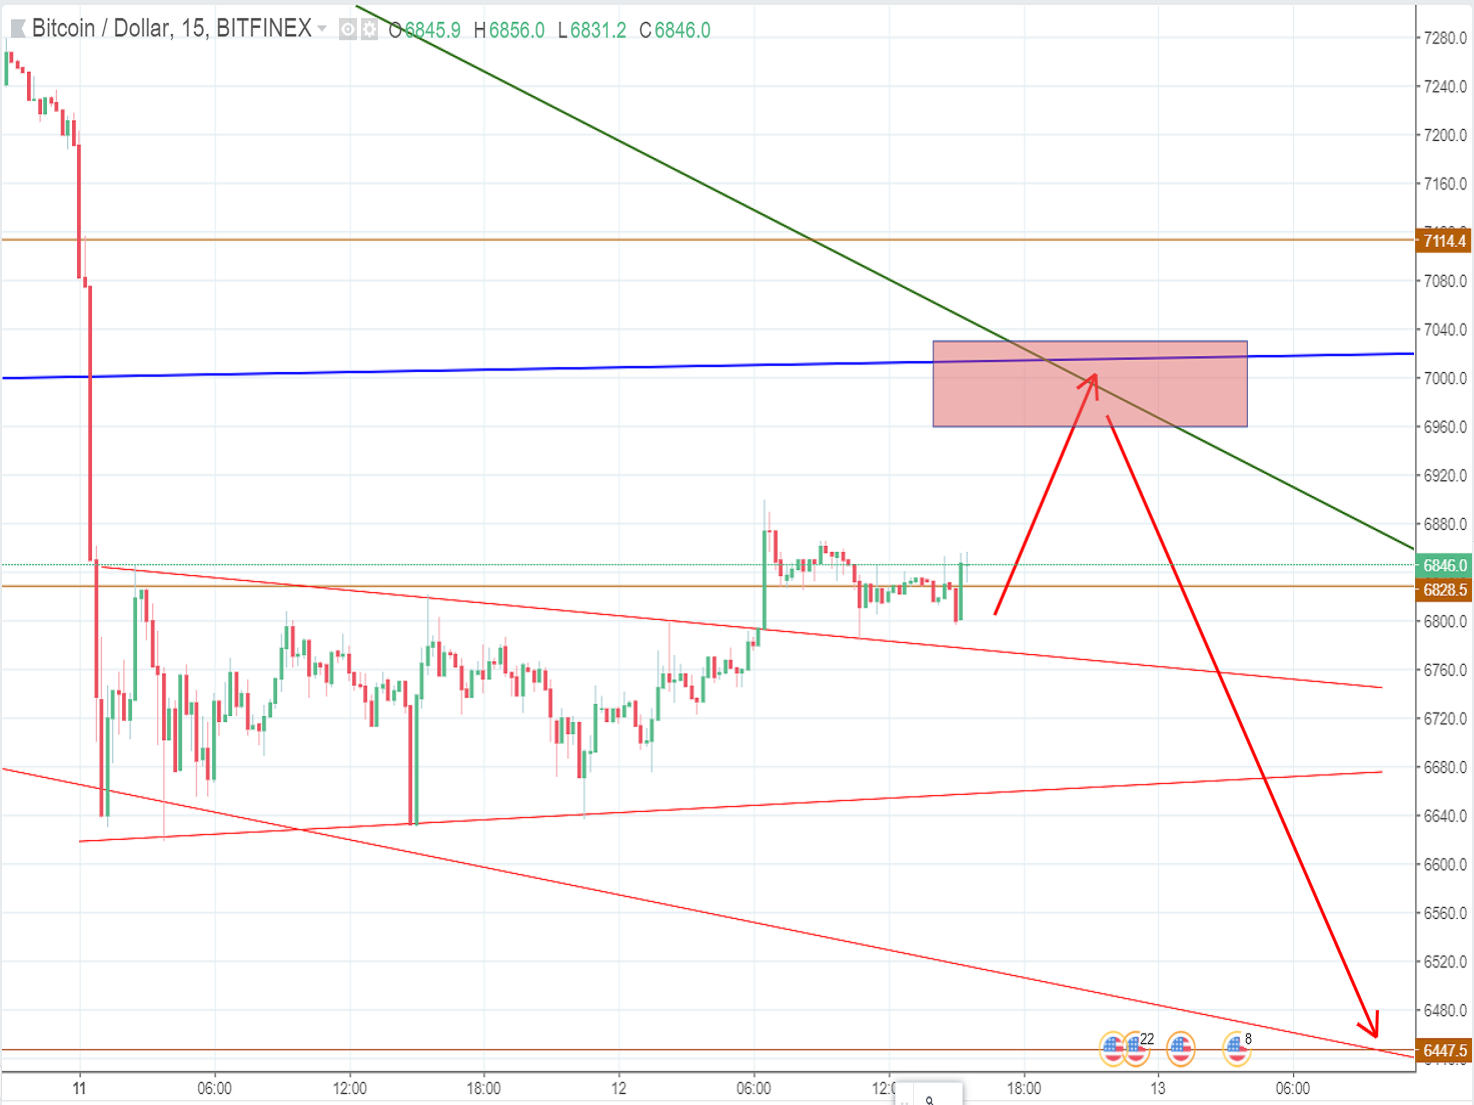 Bitcoin price (June 12th): The bear continues to overshadow the bull